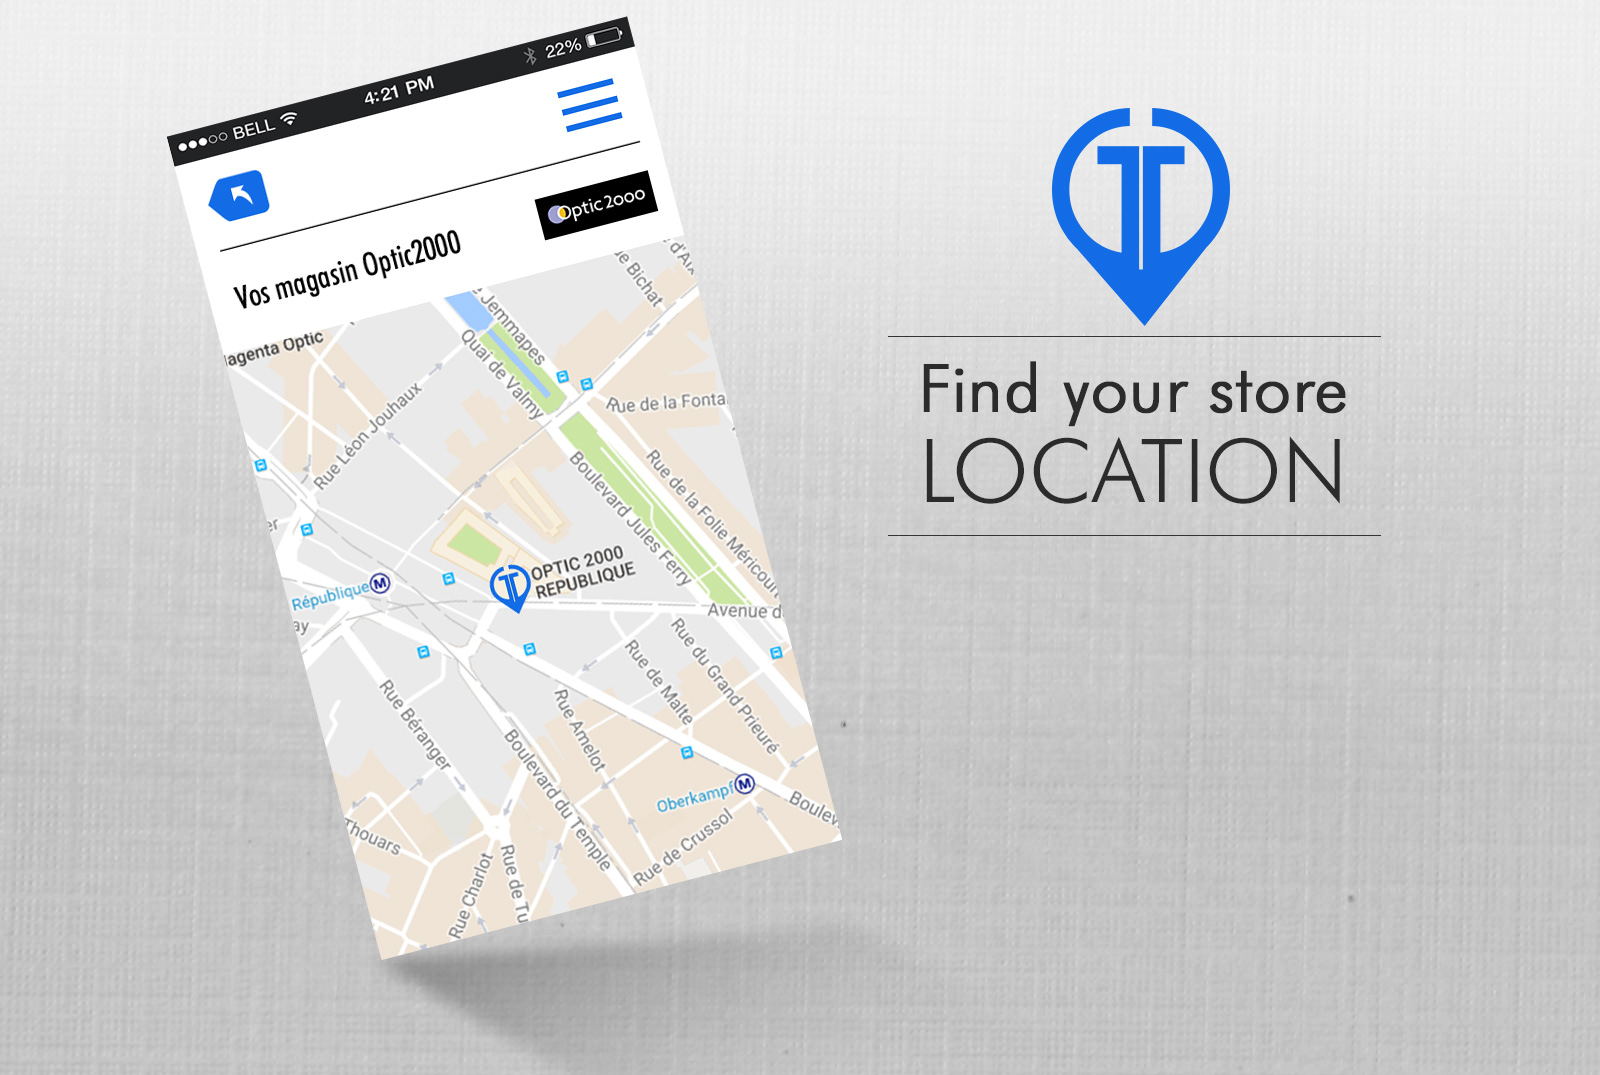 Find a store close to your position